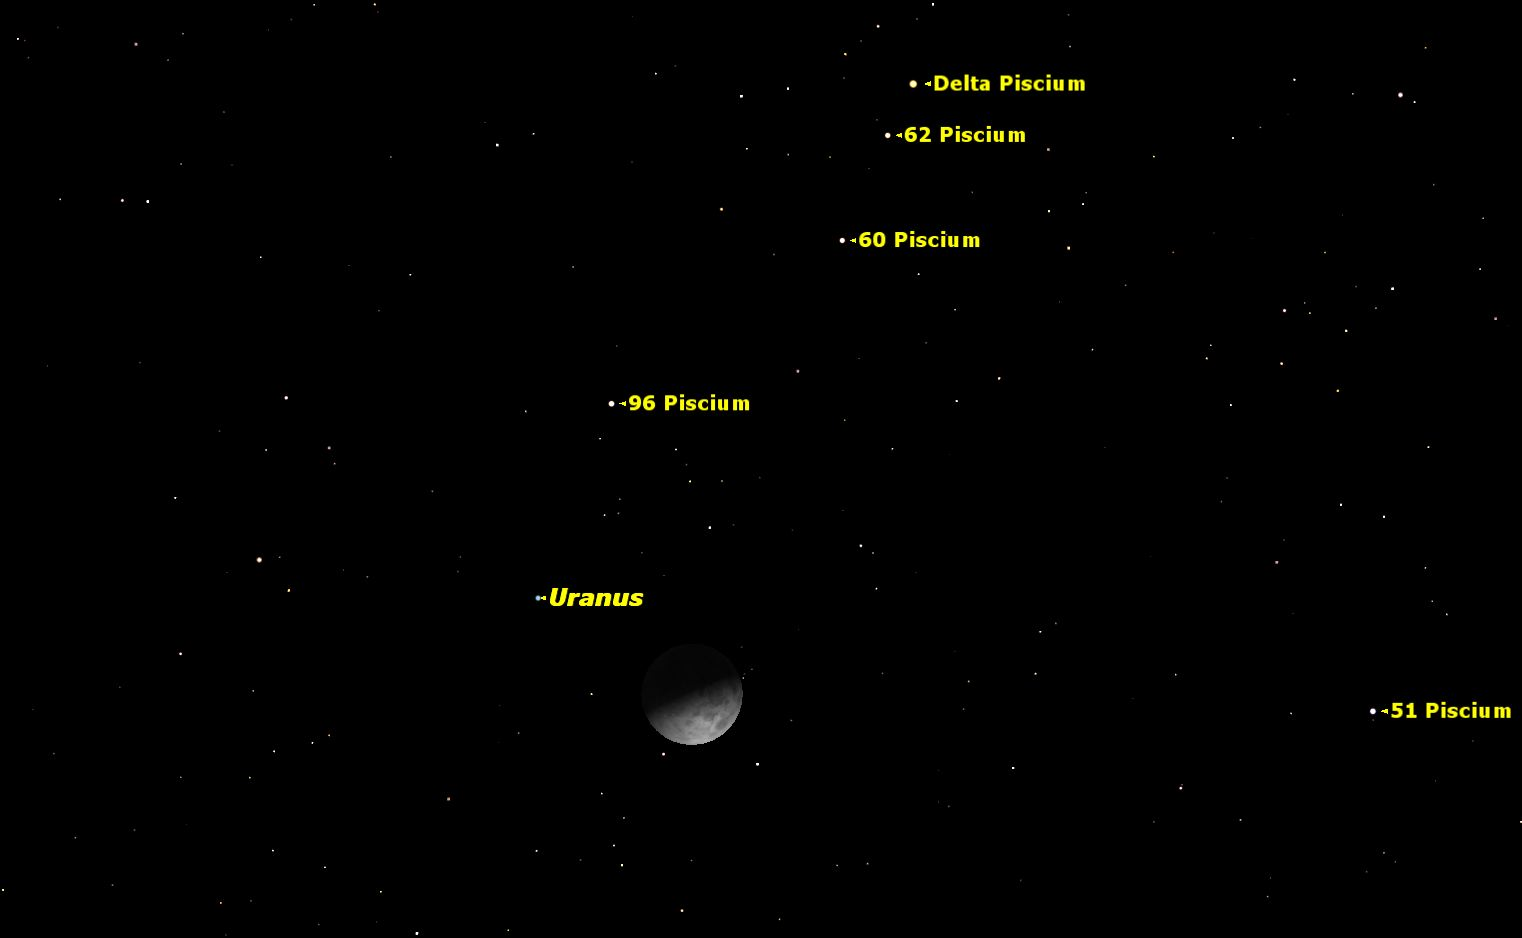 Moon Below Planet Uranus on December 28